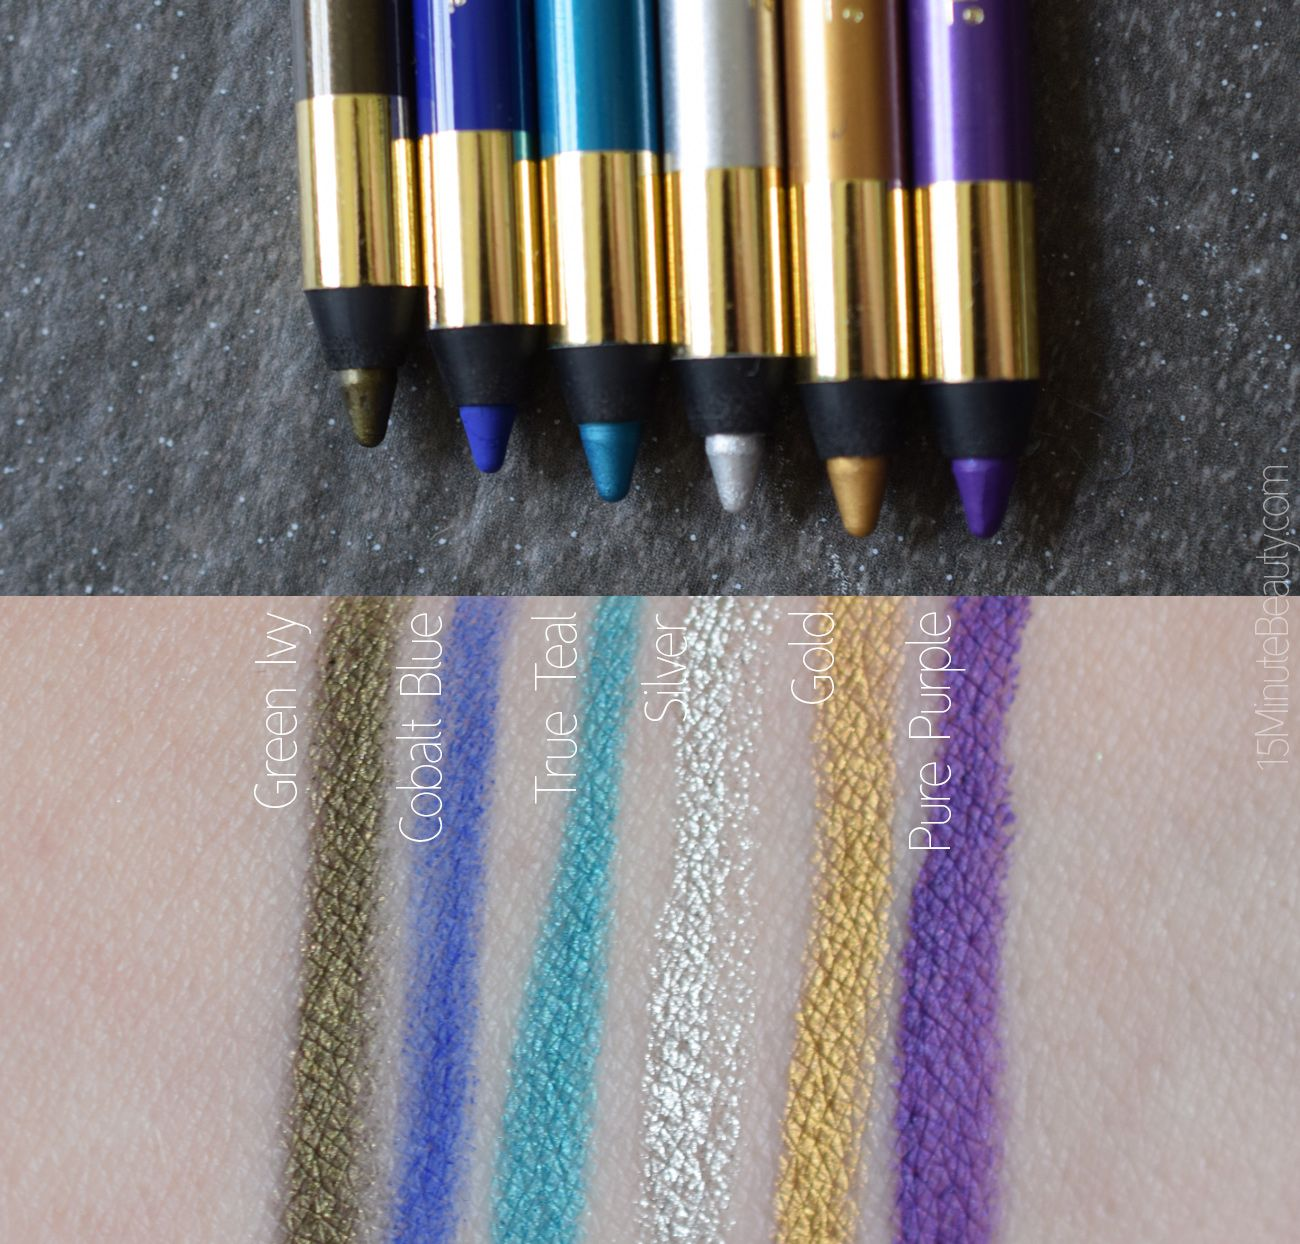 L Oreal Silkissime Eyeliner Review